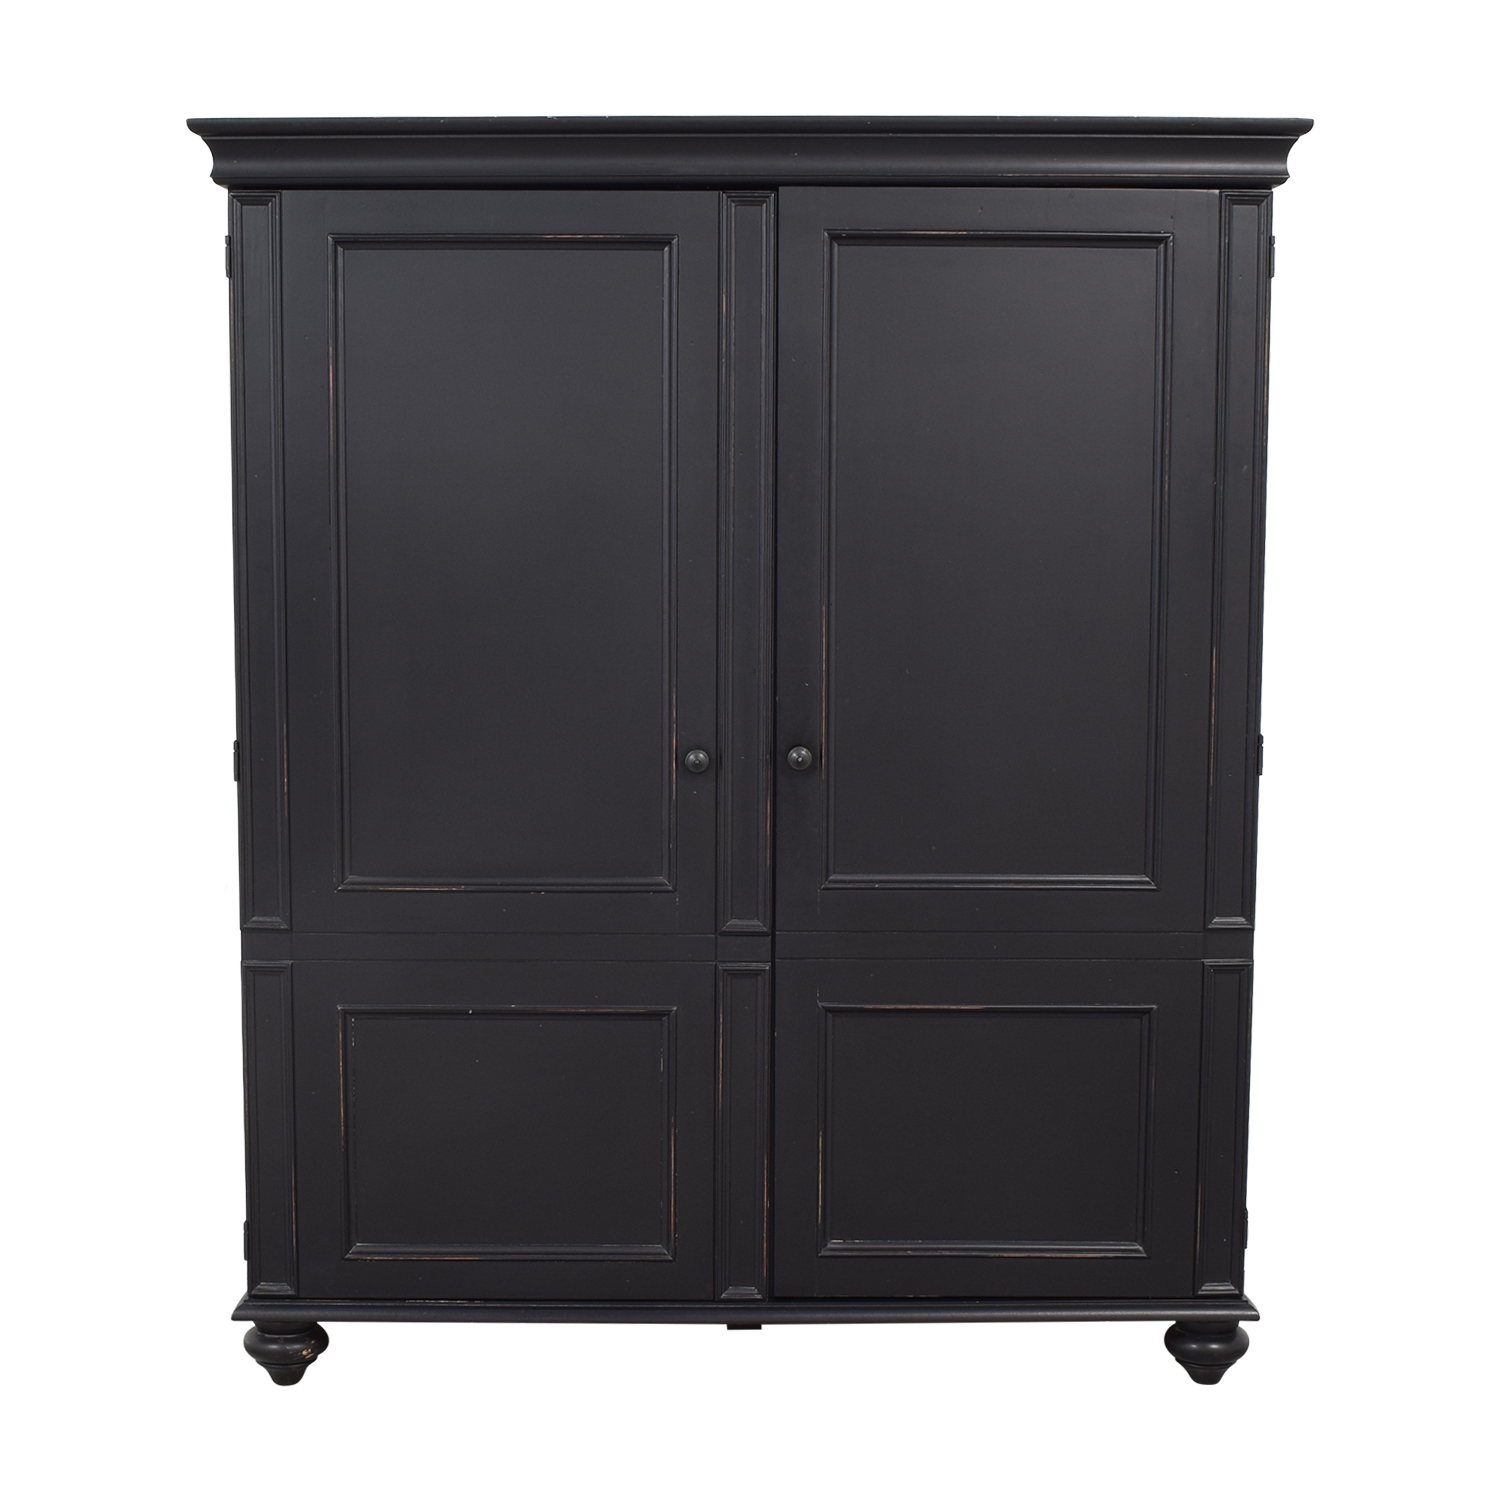 Ballard Designs Ballard Designs Home Office Armoire on sale